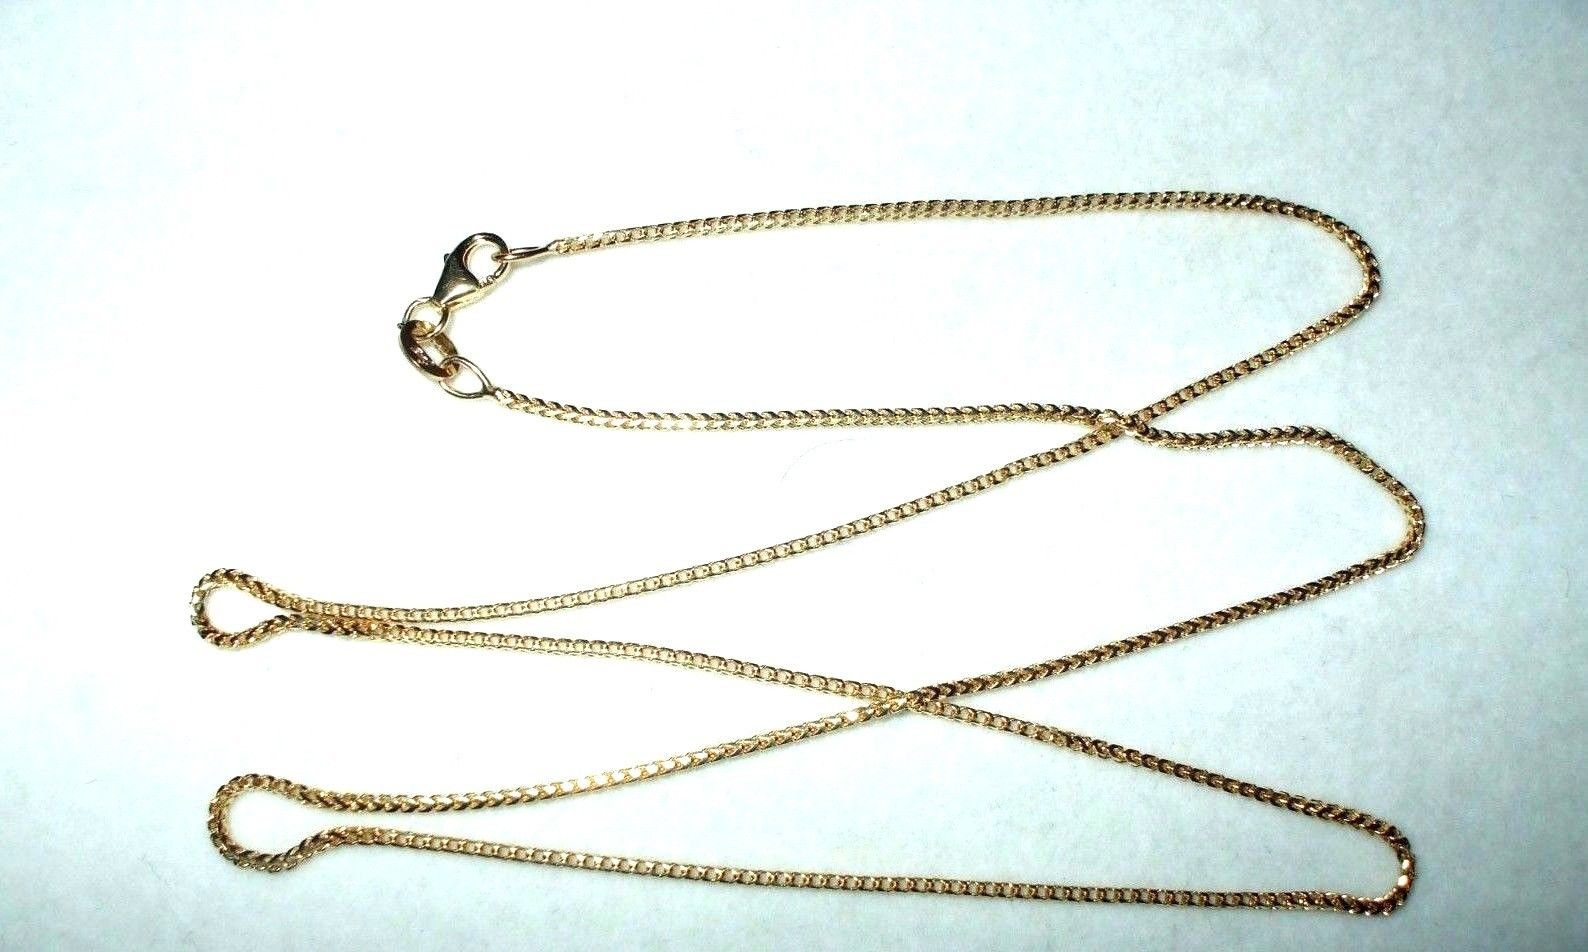 20 inch 14K yellow gold Franco chain with lobster clasp 3.5 grams $480